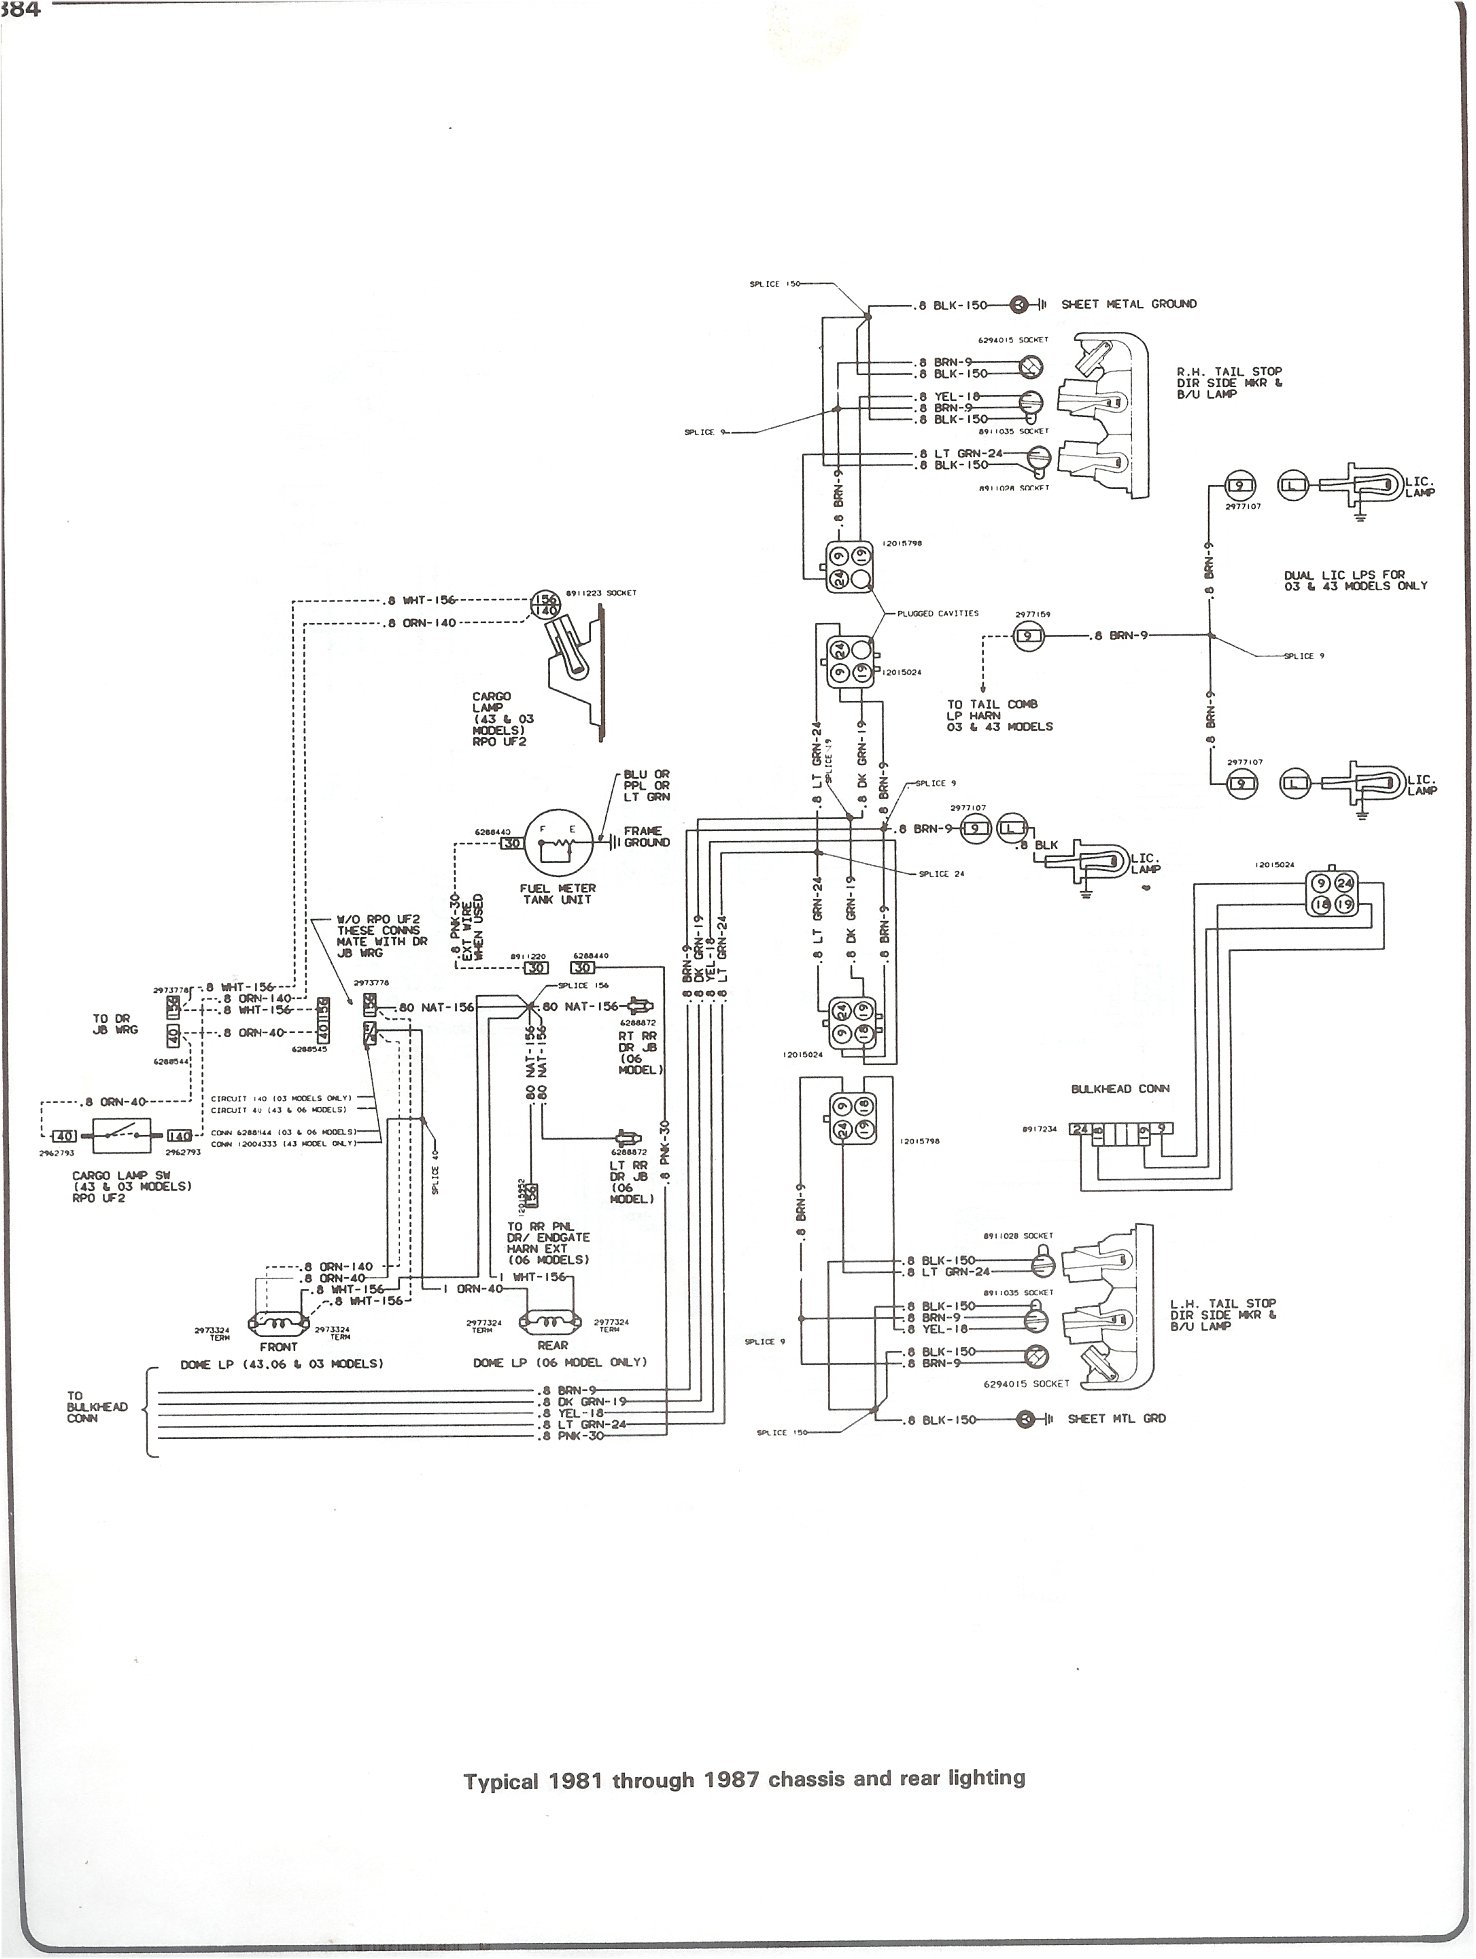 81 Gmc Truck Radio Wiring Diagram Diagrams Simple Gm Factory Harness Complete 73 87 Chassis And Rear Lighting